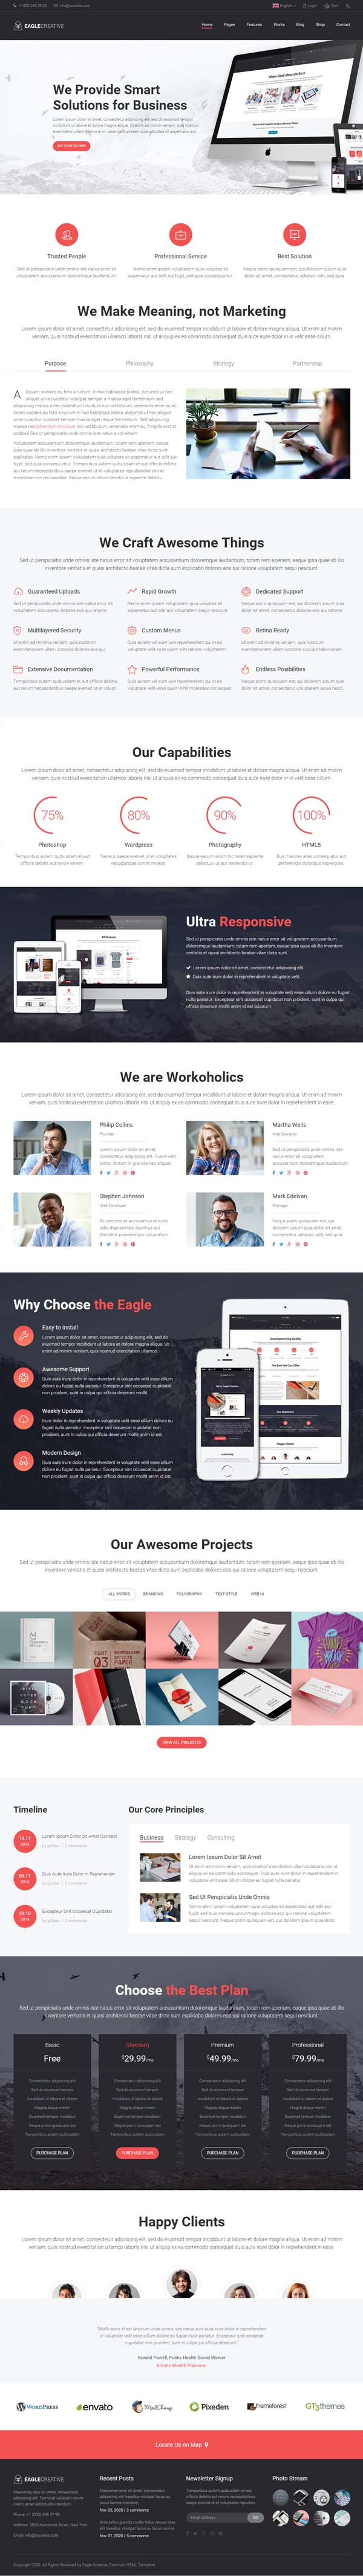 Eagle - Creative Business Website Template